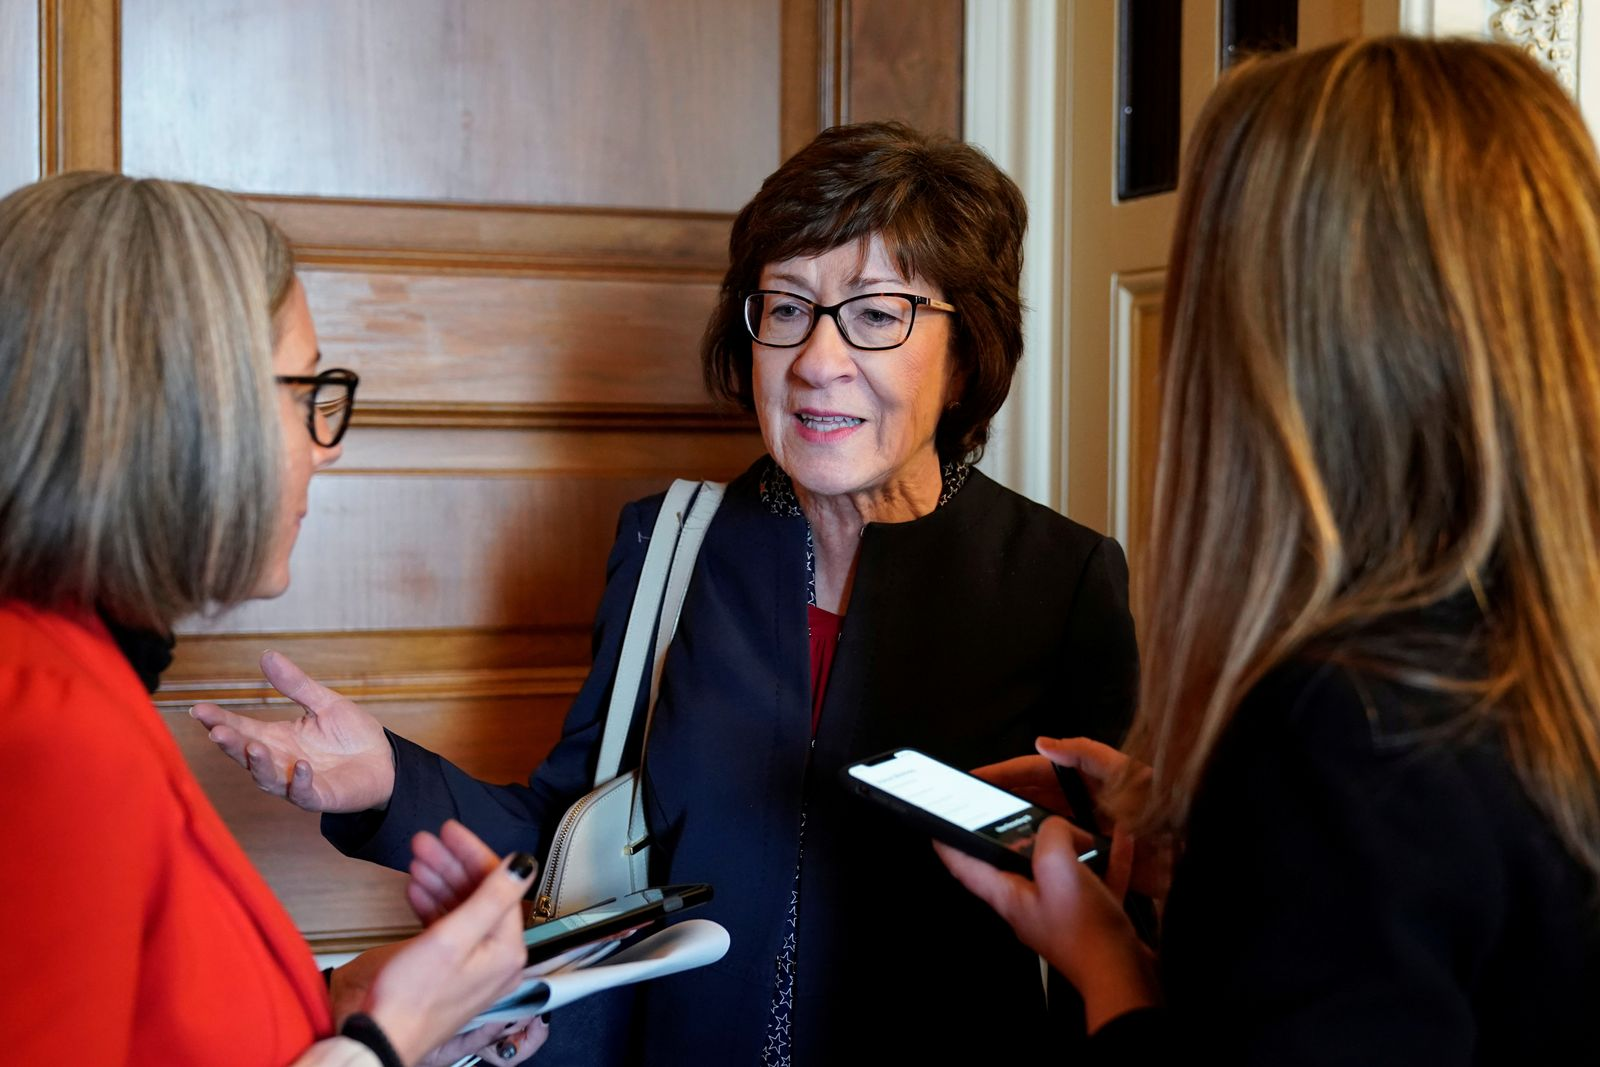 Senator Susan Collins speaks to reporters after the House of Representatives named managers for the Senate impeachment trial of U.S. President Donald Trump at the U.S. Capitol in Washington